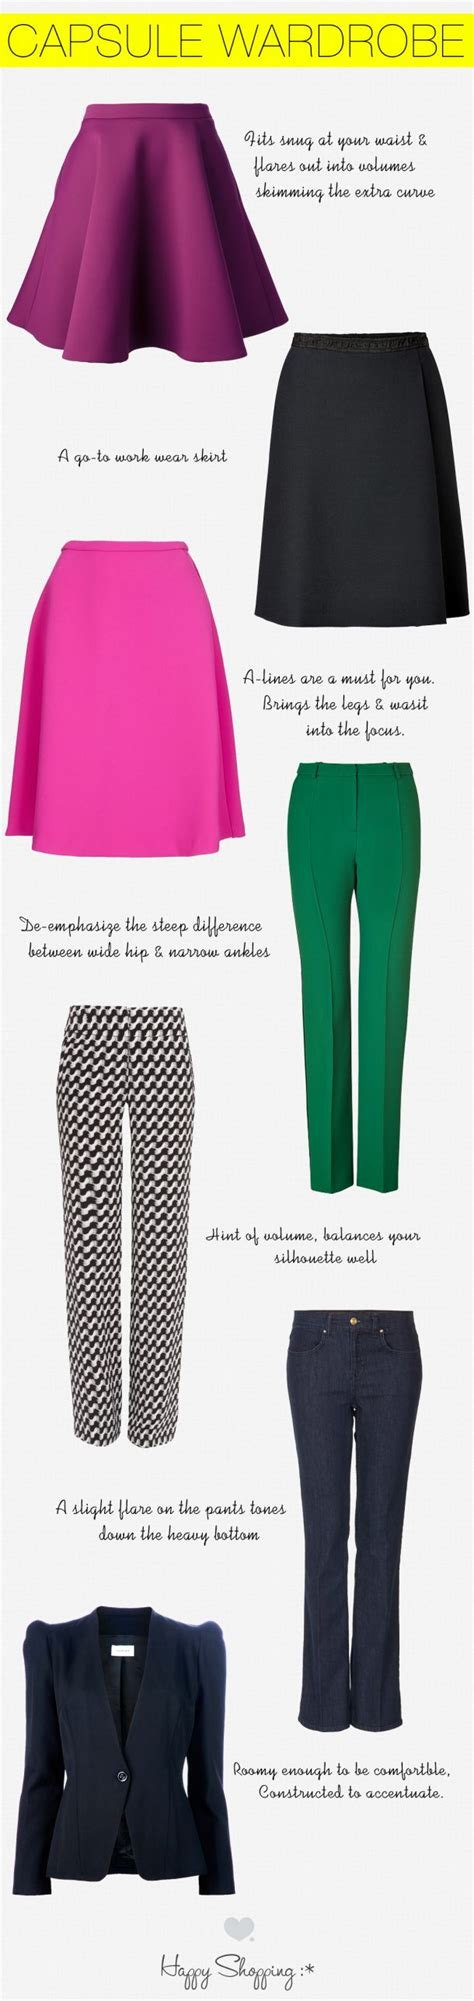 building a capsule wardrobe for a pear shaped woman 131 best images about styles for a pear shape on pinterest